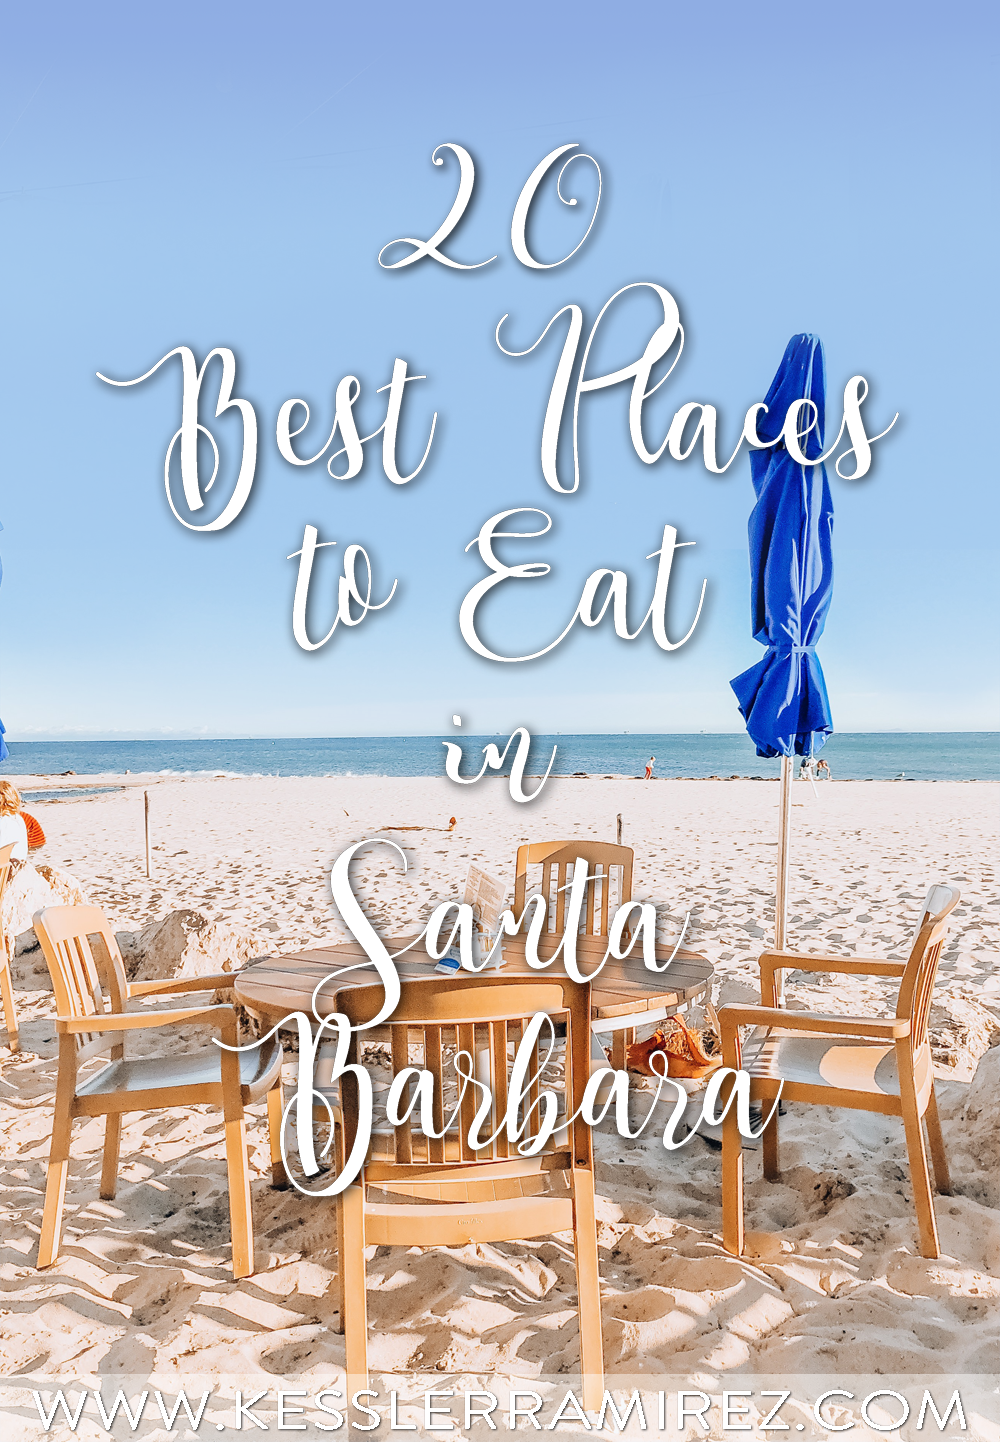 Places to Eat in Santa Barbara – Kessler Ramirez